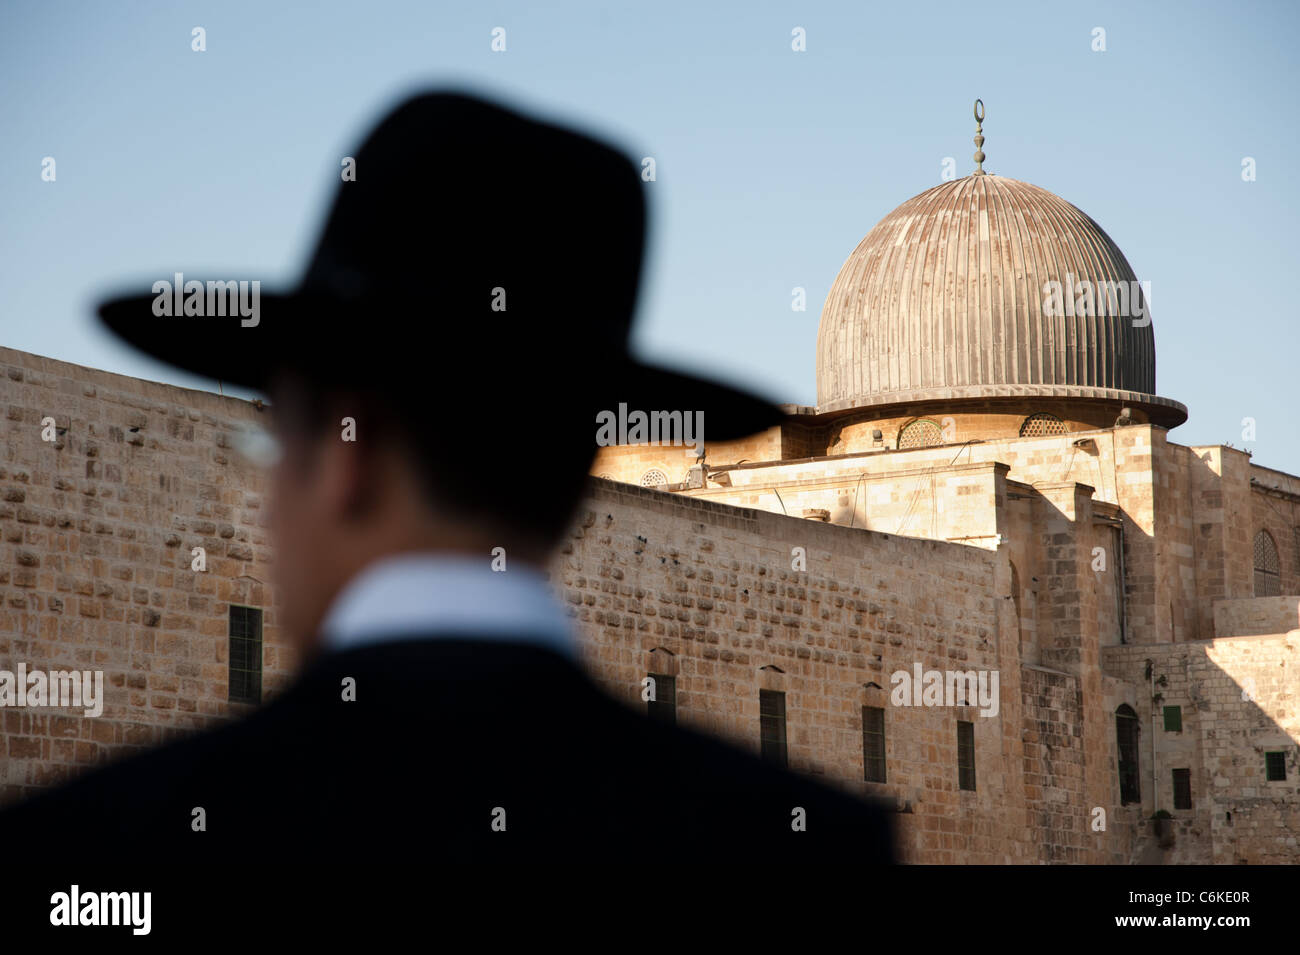 Ultra-orthodox Jews stand silhouetted against the dome of the Al-Aqsa Mosque in Jerusalem's Old City. - Stock Image